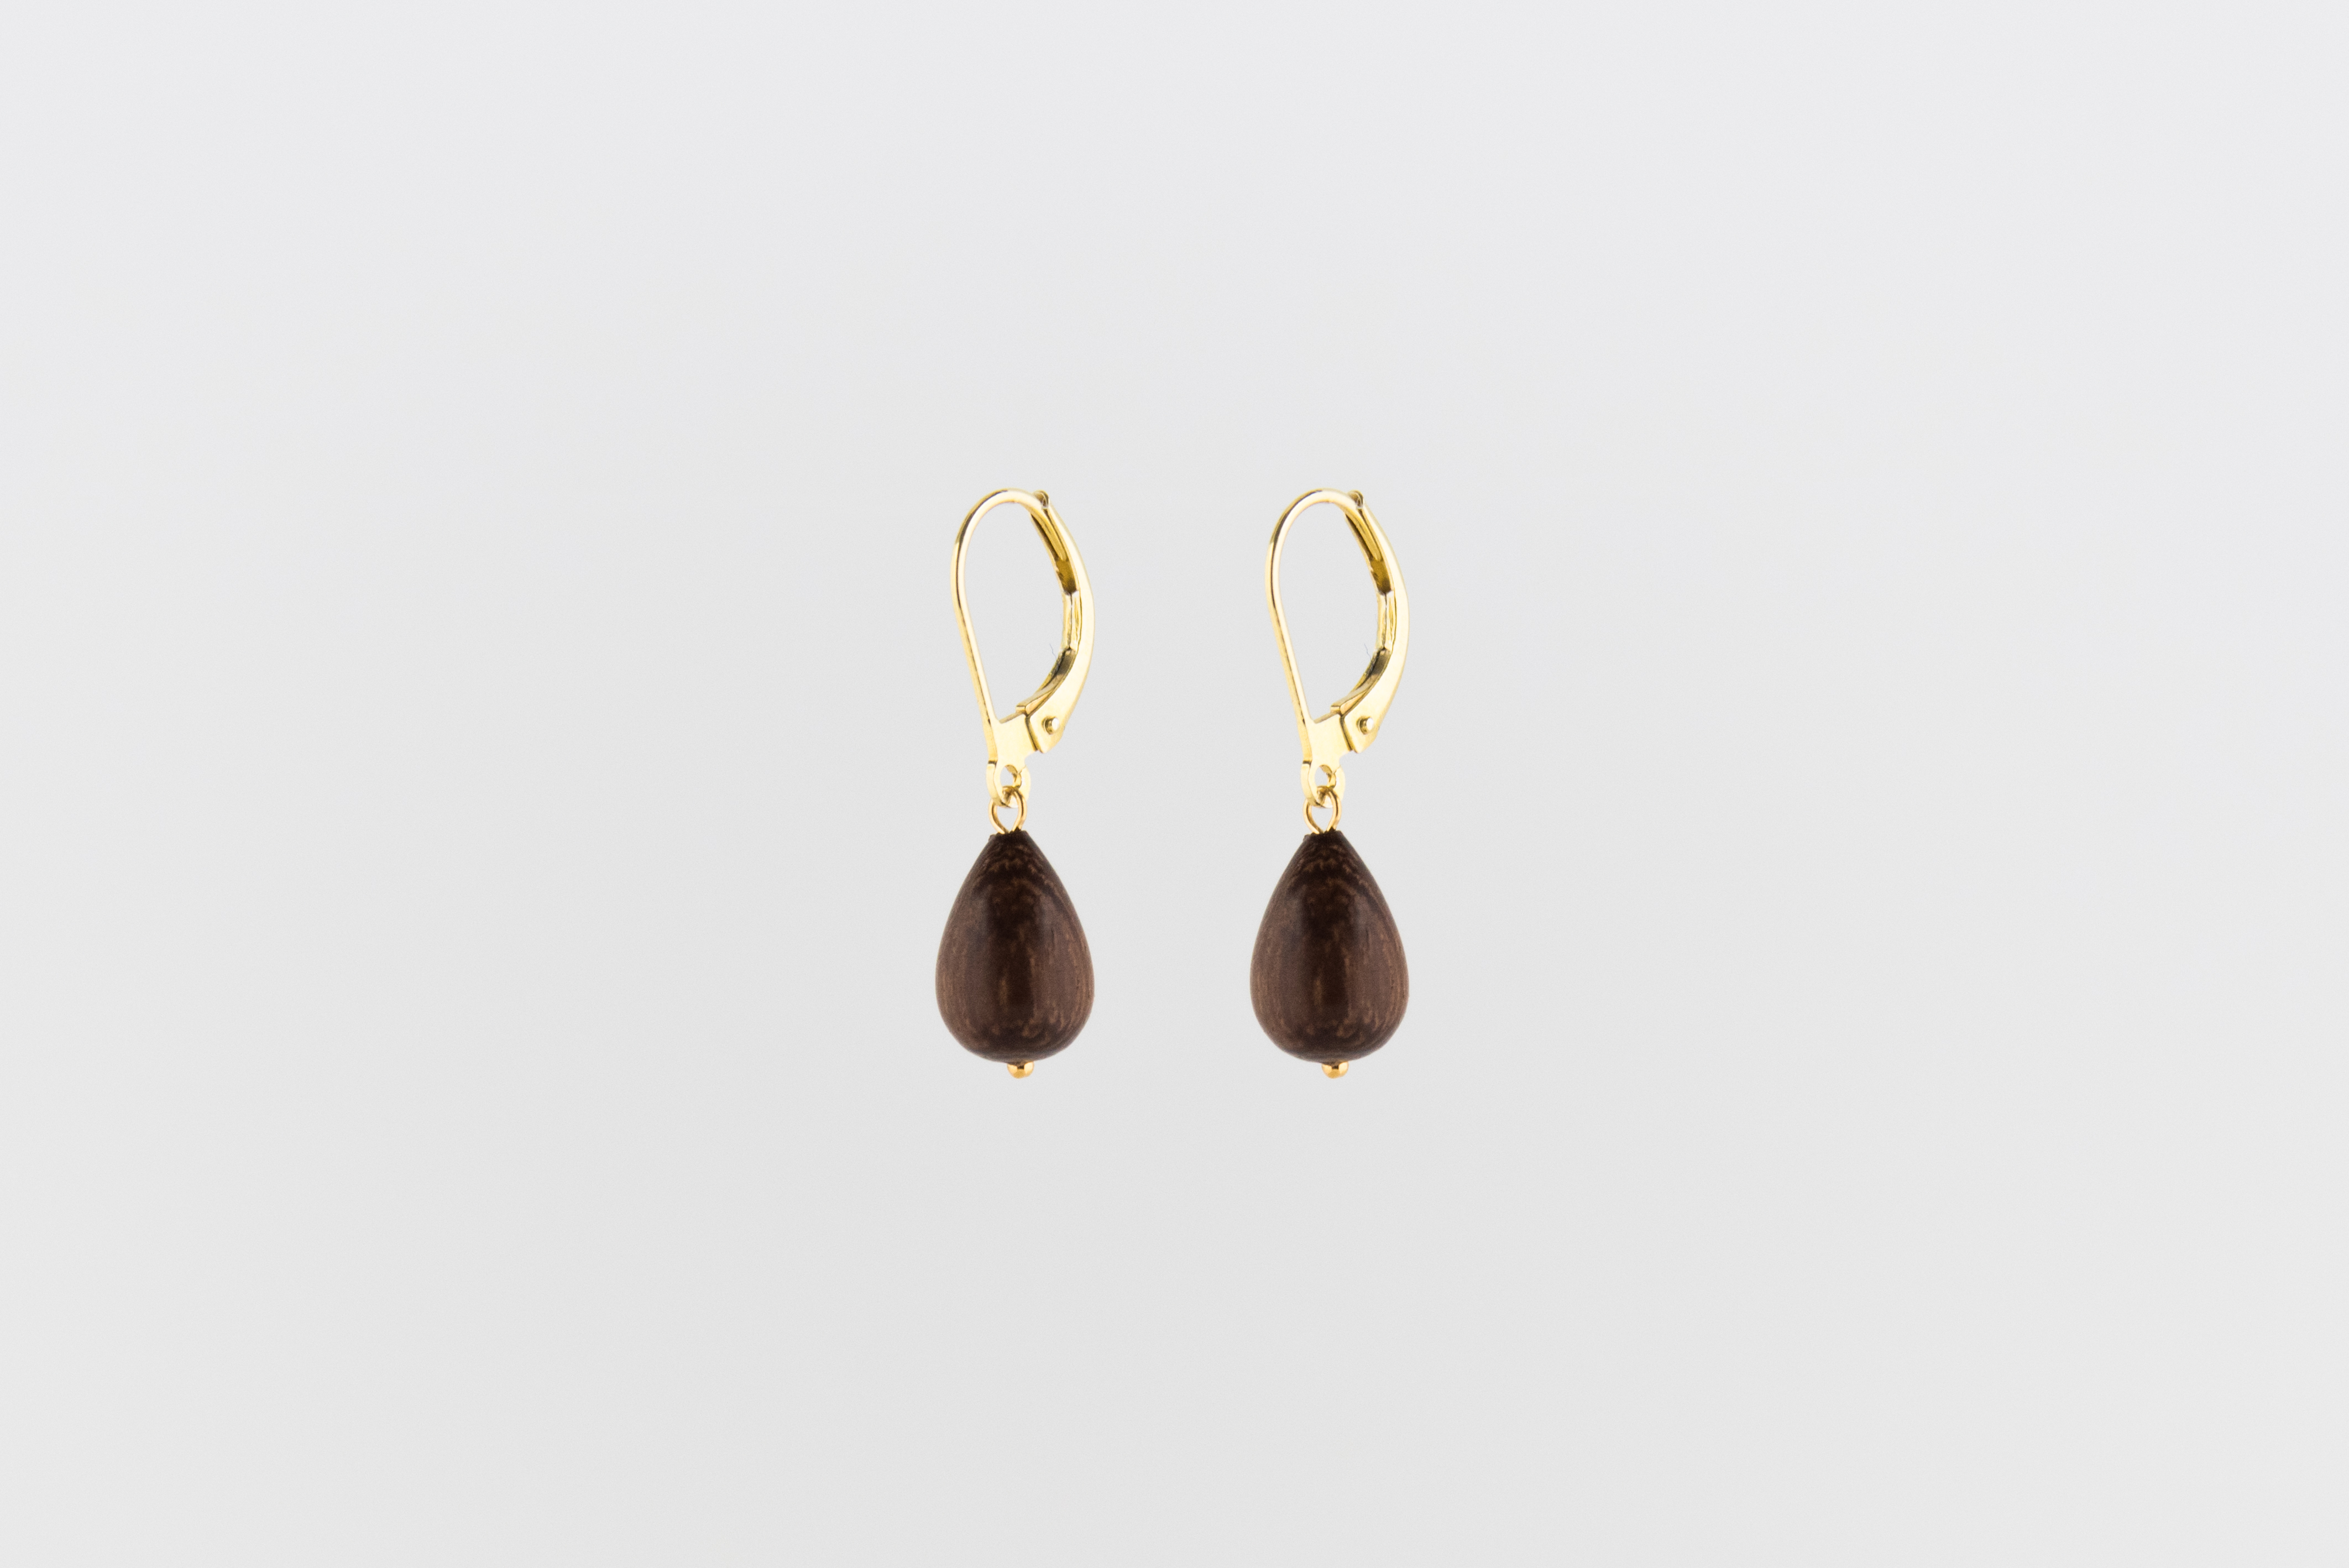 Julia Otilia, Certefied wooden raindrop earring, gold plated, 69.95 Euro